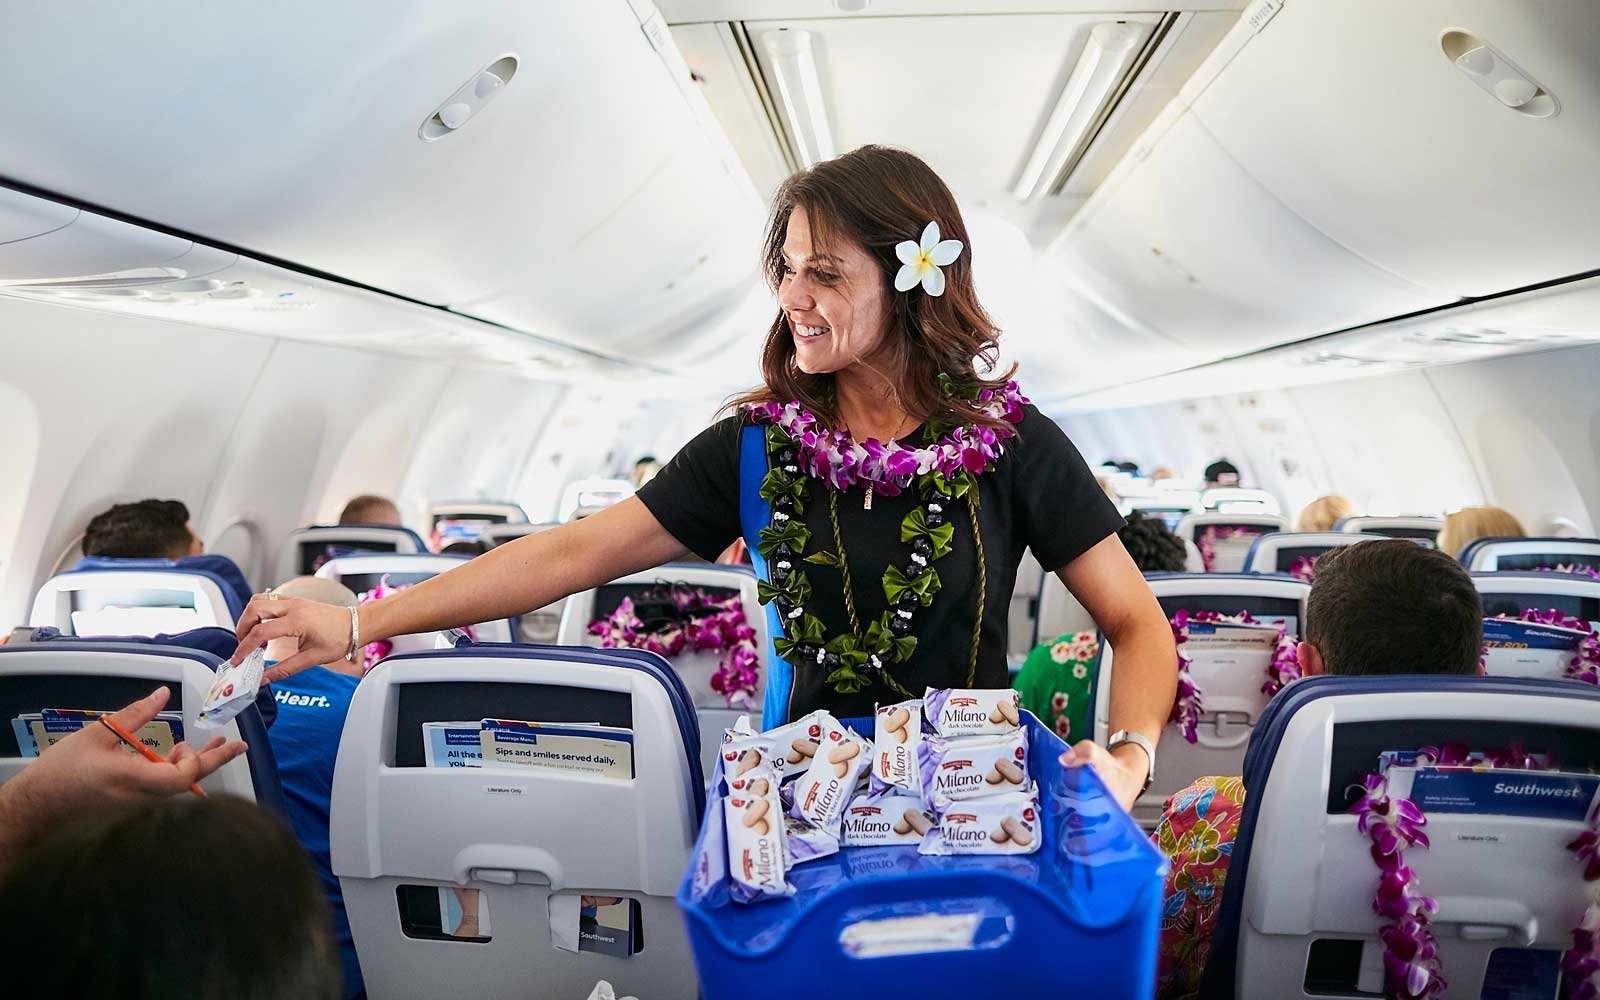 how far in advance should i book a flight on southwest airlines